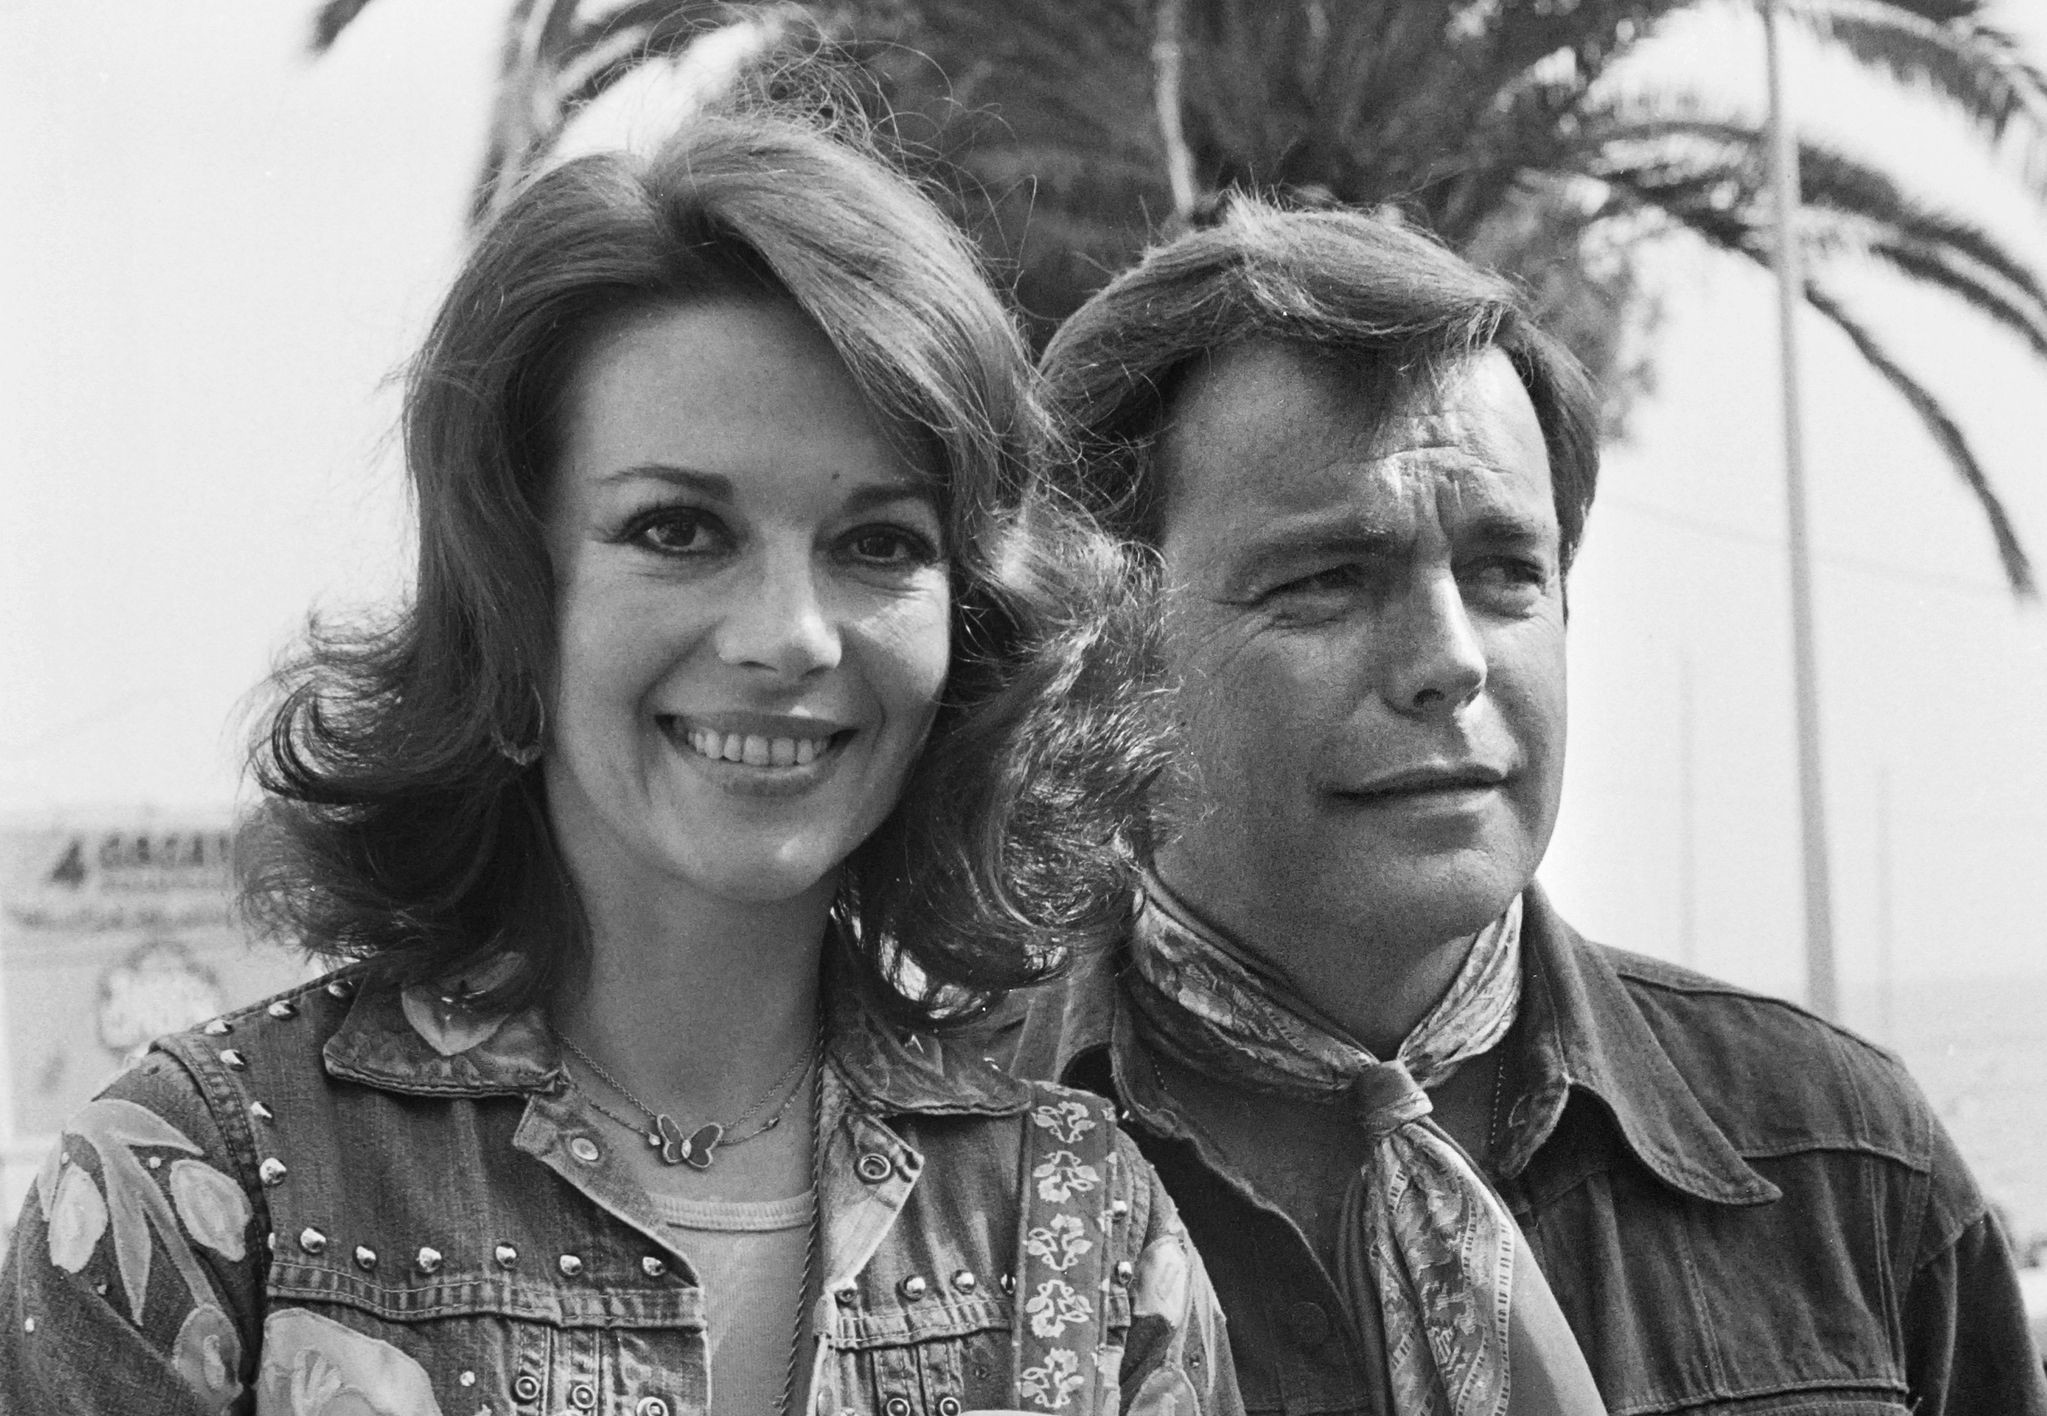 This file photo taken on May 18, 1976, shows actorss Natalie Wood and her husband Robert Wagner during the 29th Cannes Film Festival in Cannes. (AFP Photo)